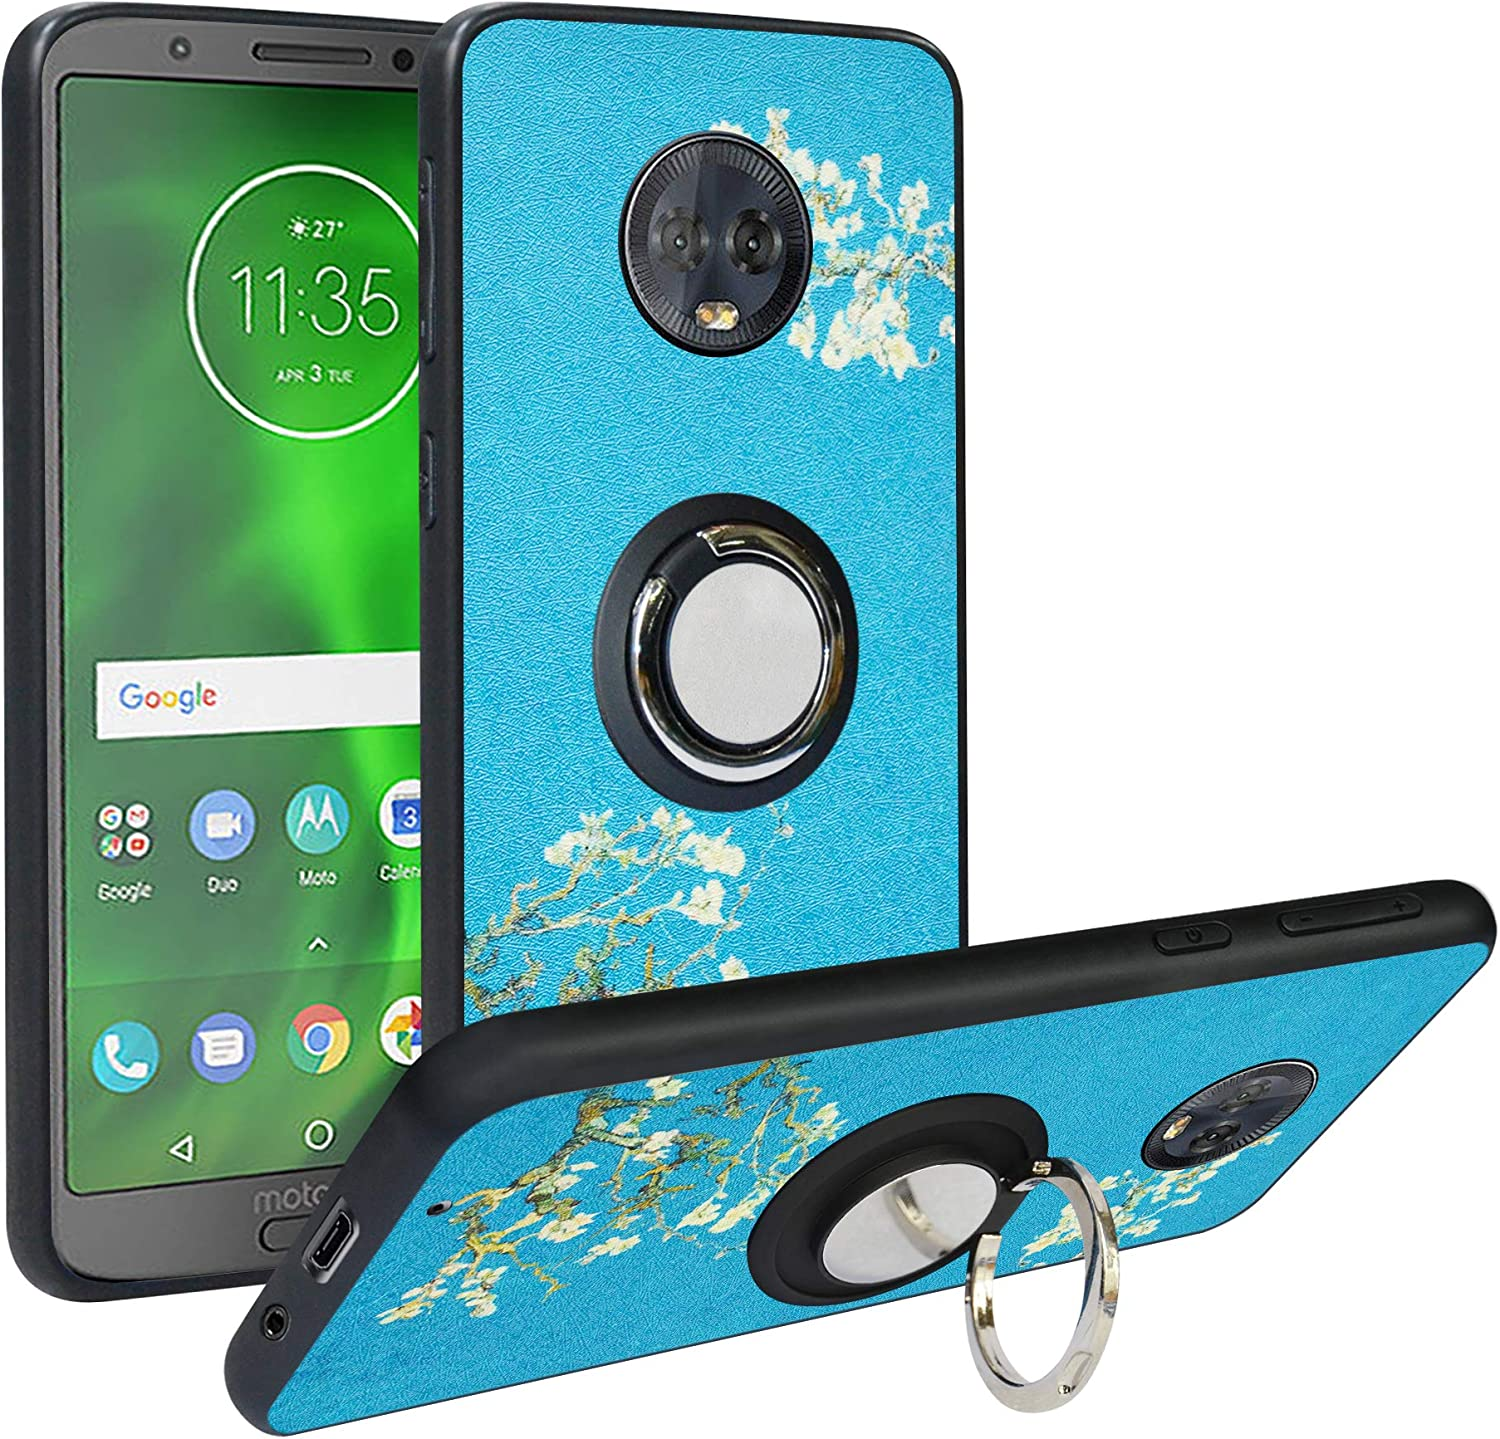 Alapmk Compatible with Moto G6 Case,[Pattern Design] with Kickstand Fit Magnetic Car Mount, Shock Absorption Protective Case Cover for Motorola Moto G6,Flower